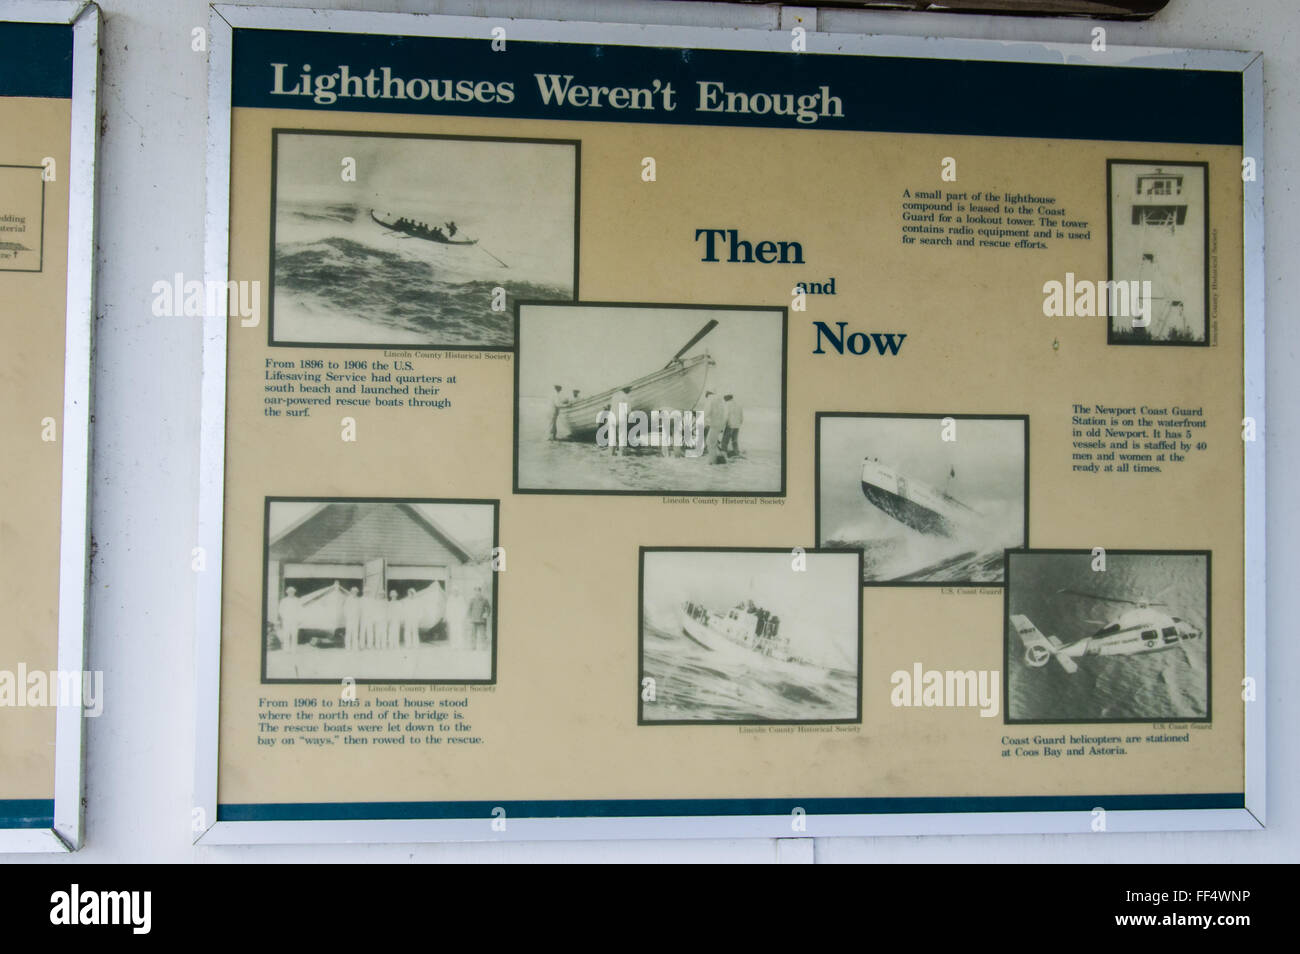 Lighthouses In Oregon Map.Sign Explaining Safety And Lighthouses On The Oregon Coast Stock